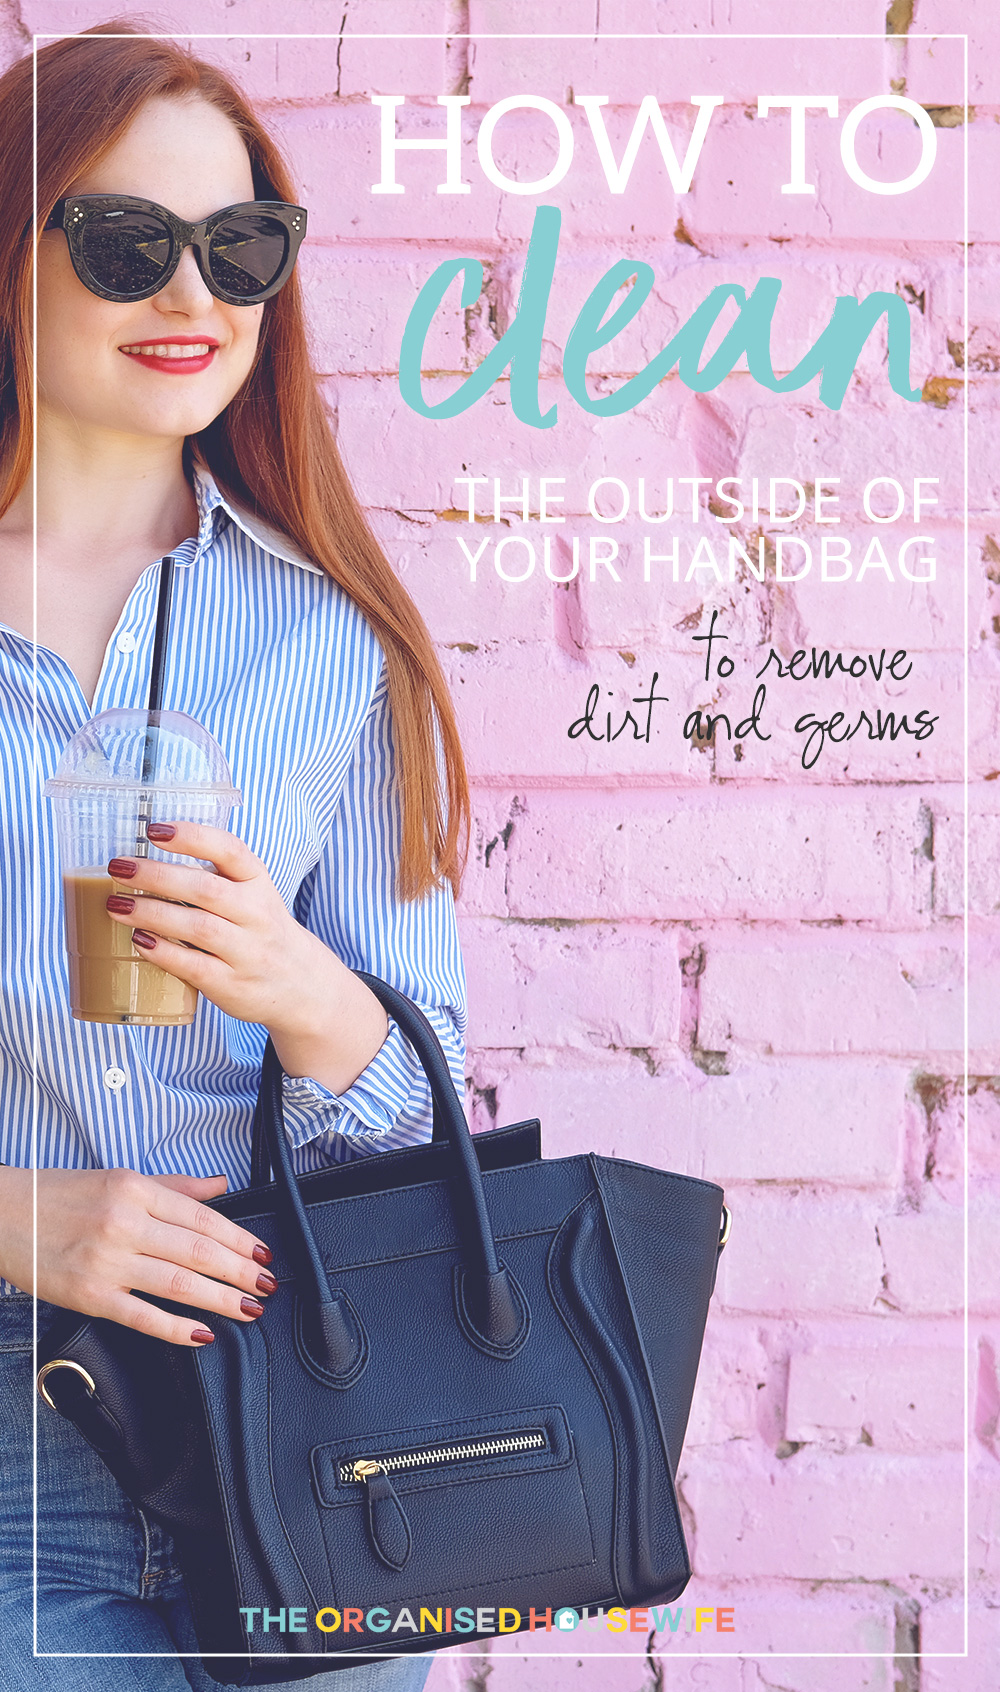 Handbags can capture so much dirt and germs, it's a good idea to regularly clean it with this gentle cleaning solution.